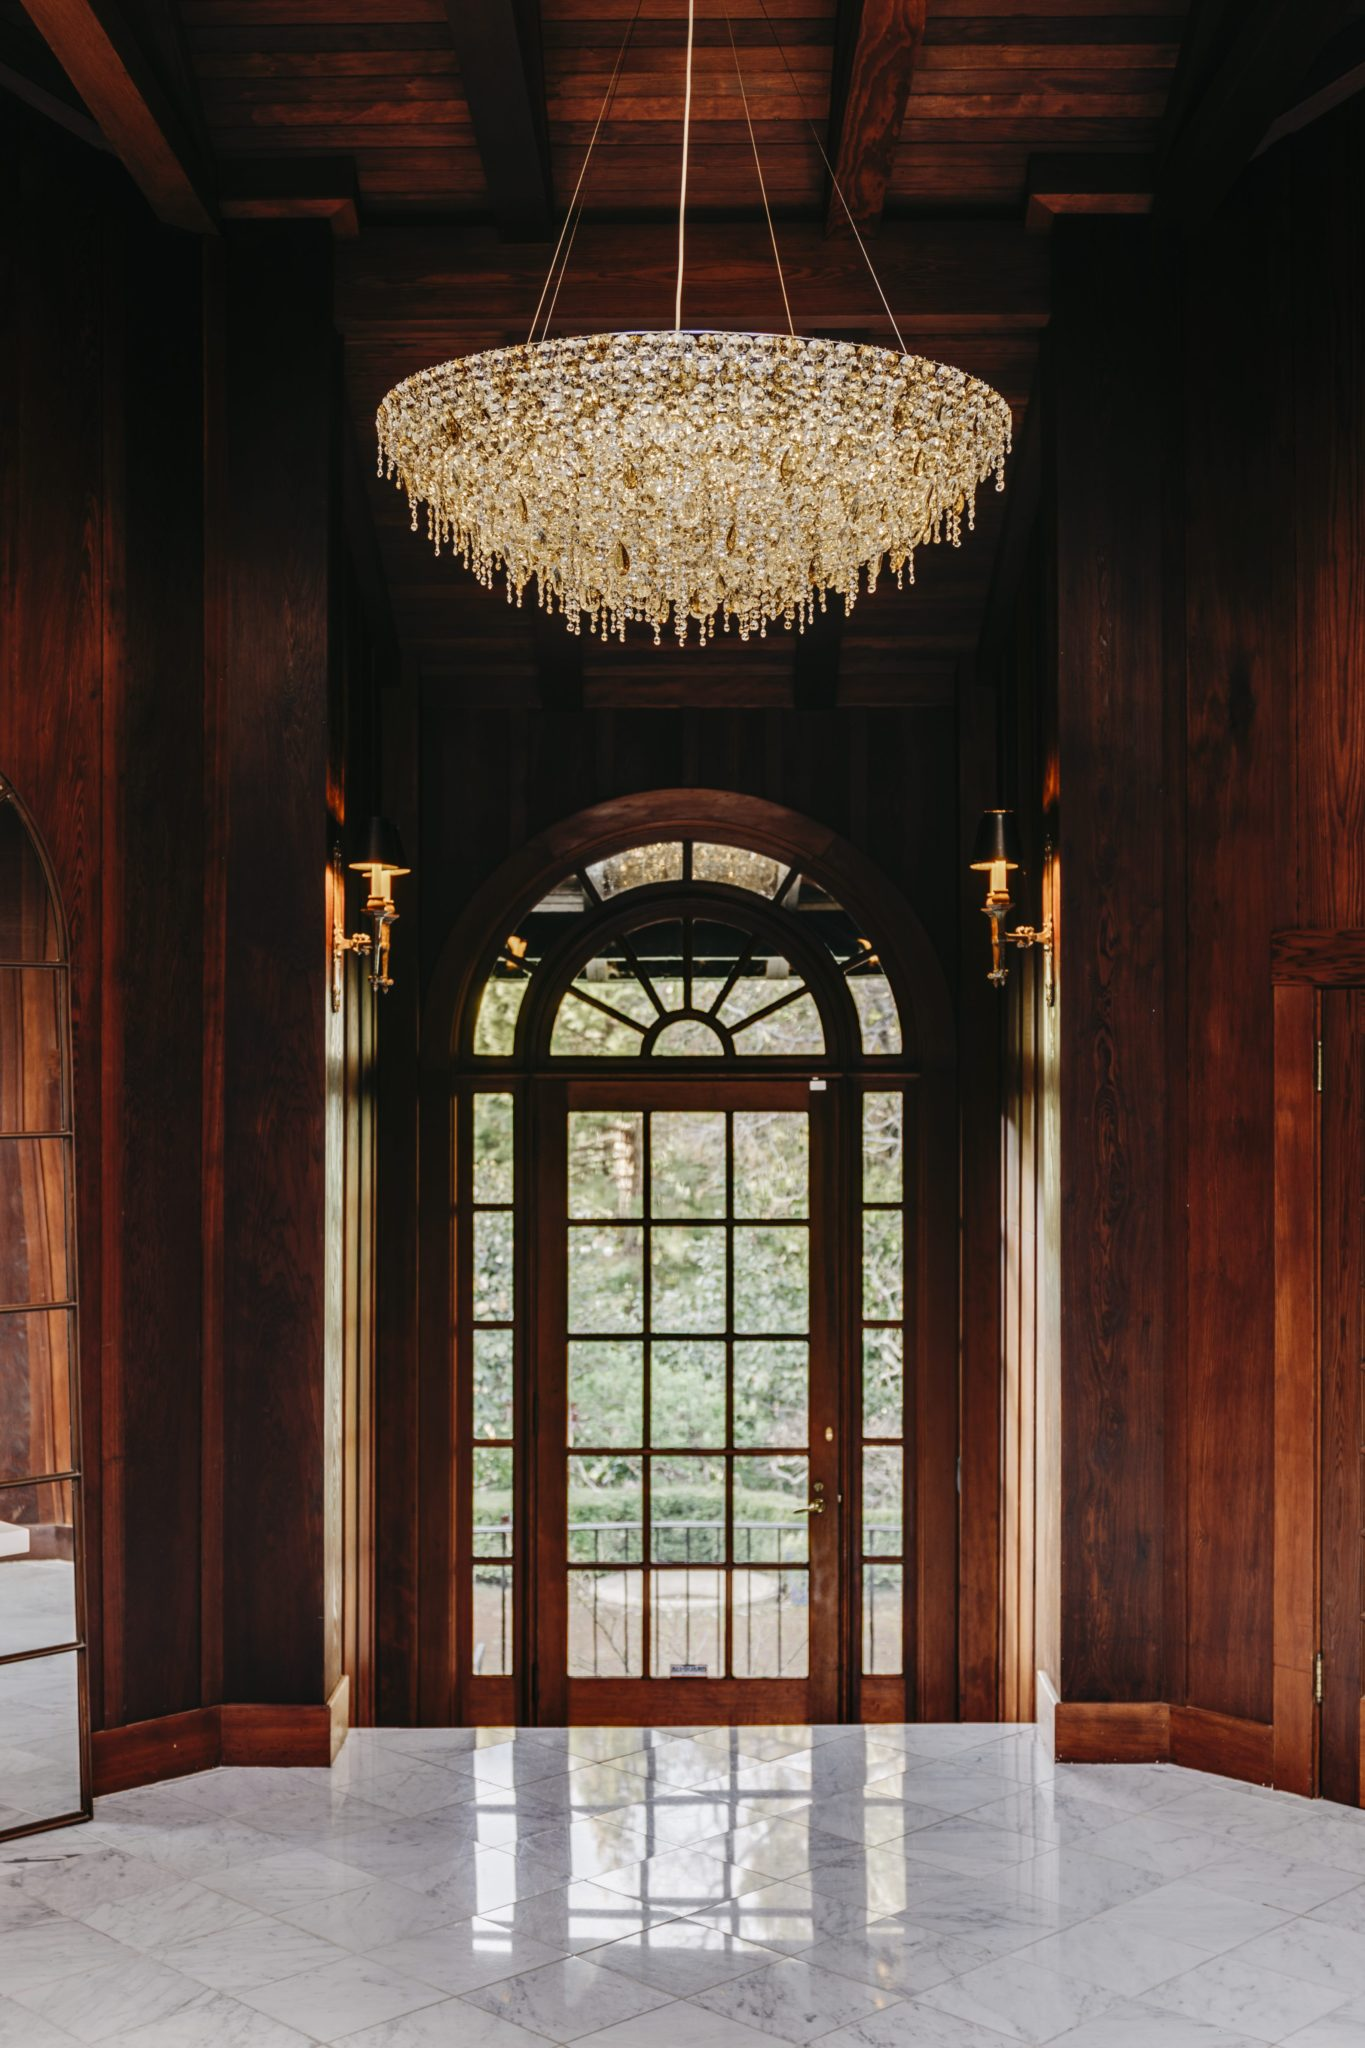 In the entryway, a circular chandelier from Les Ateliers Courbet lights up the space.